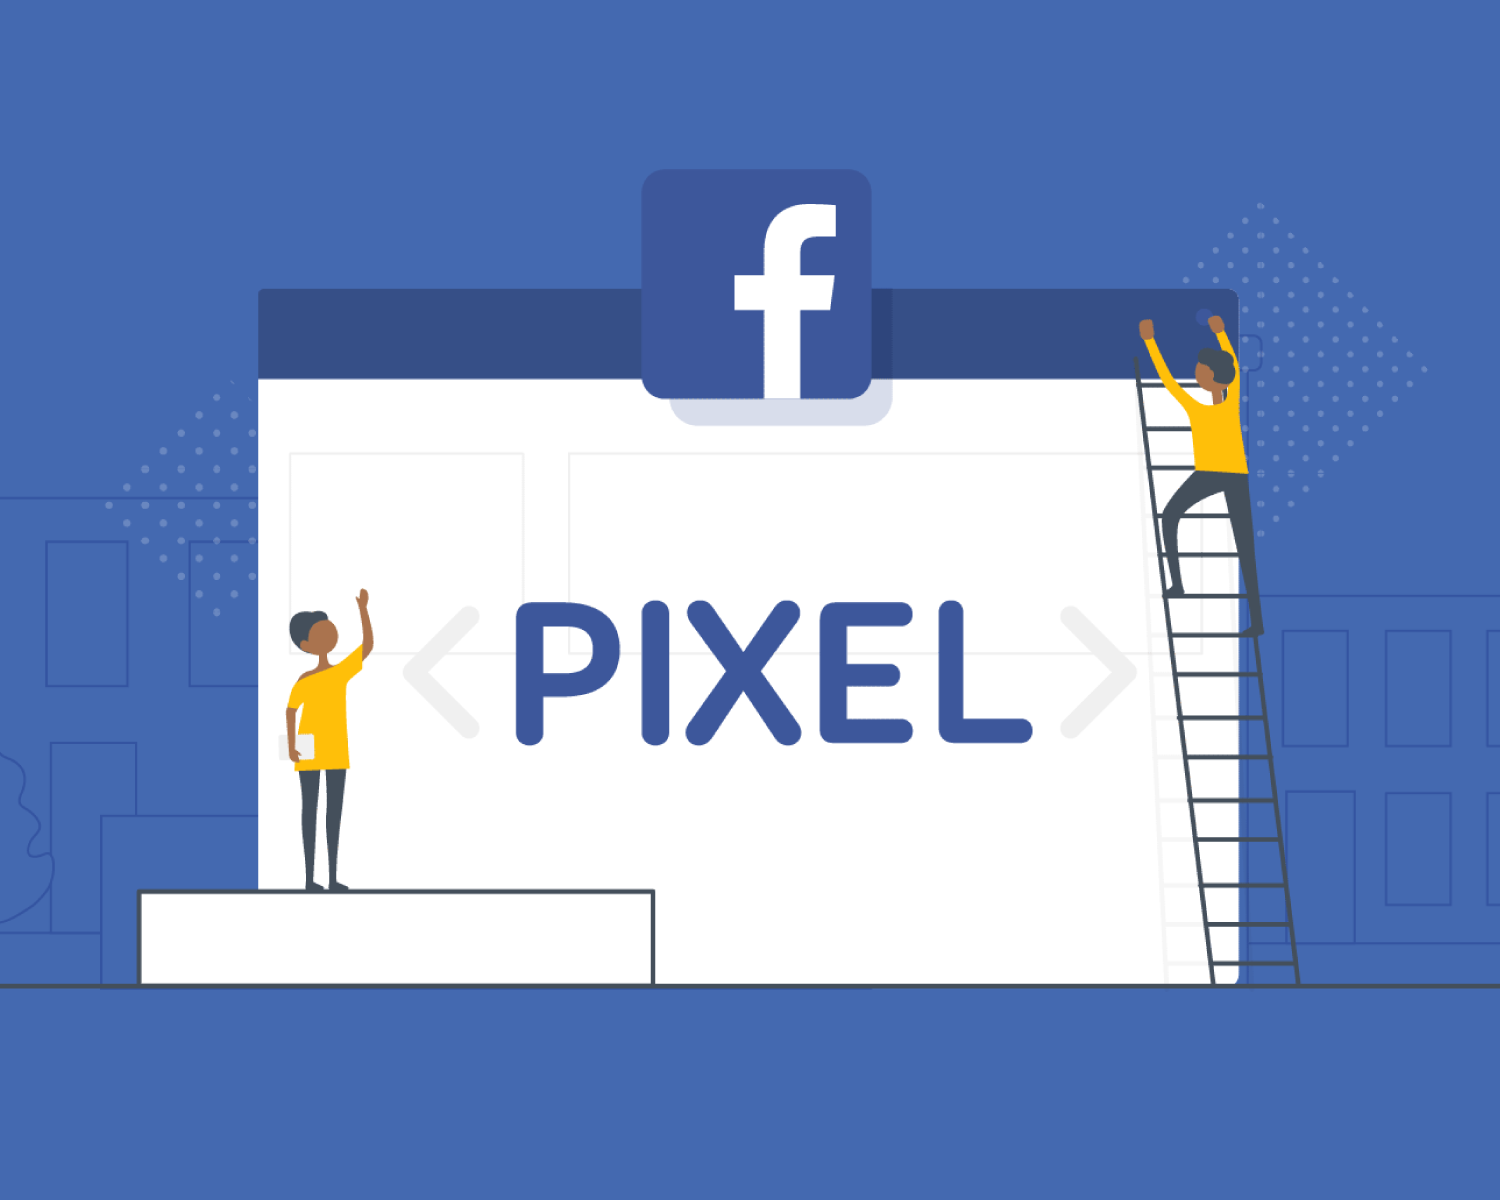 Set up and install Facebook pixel